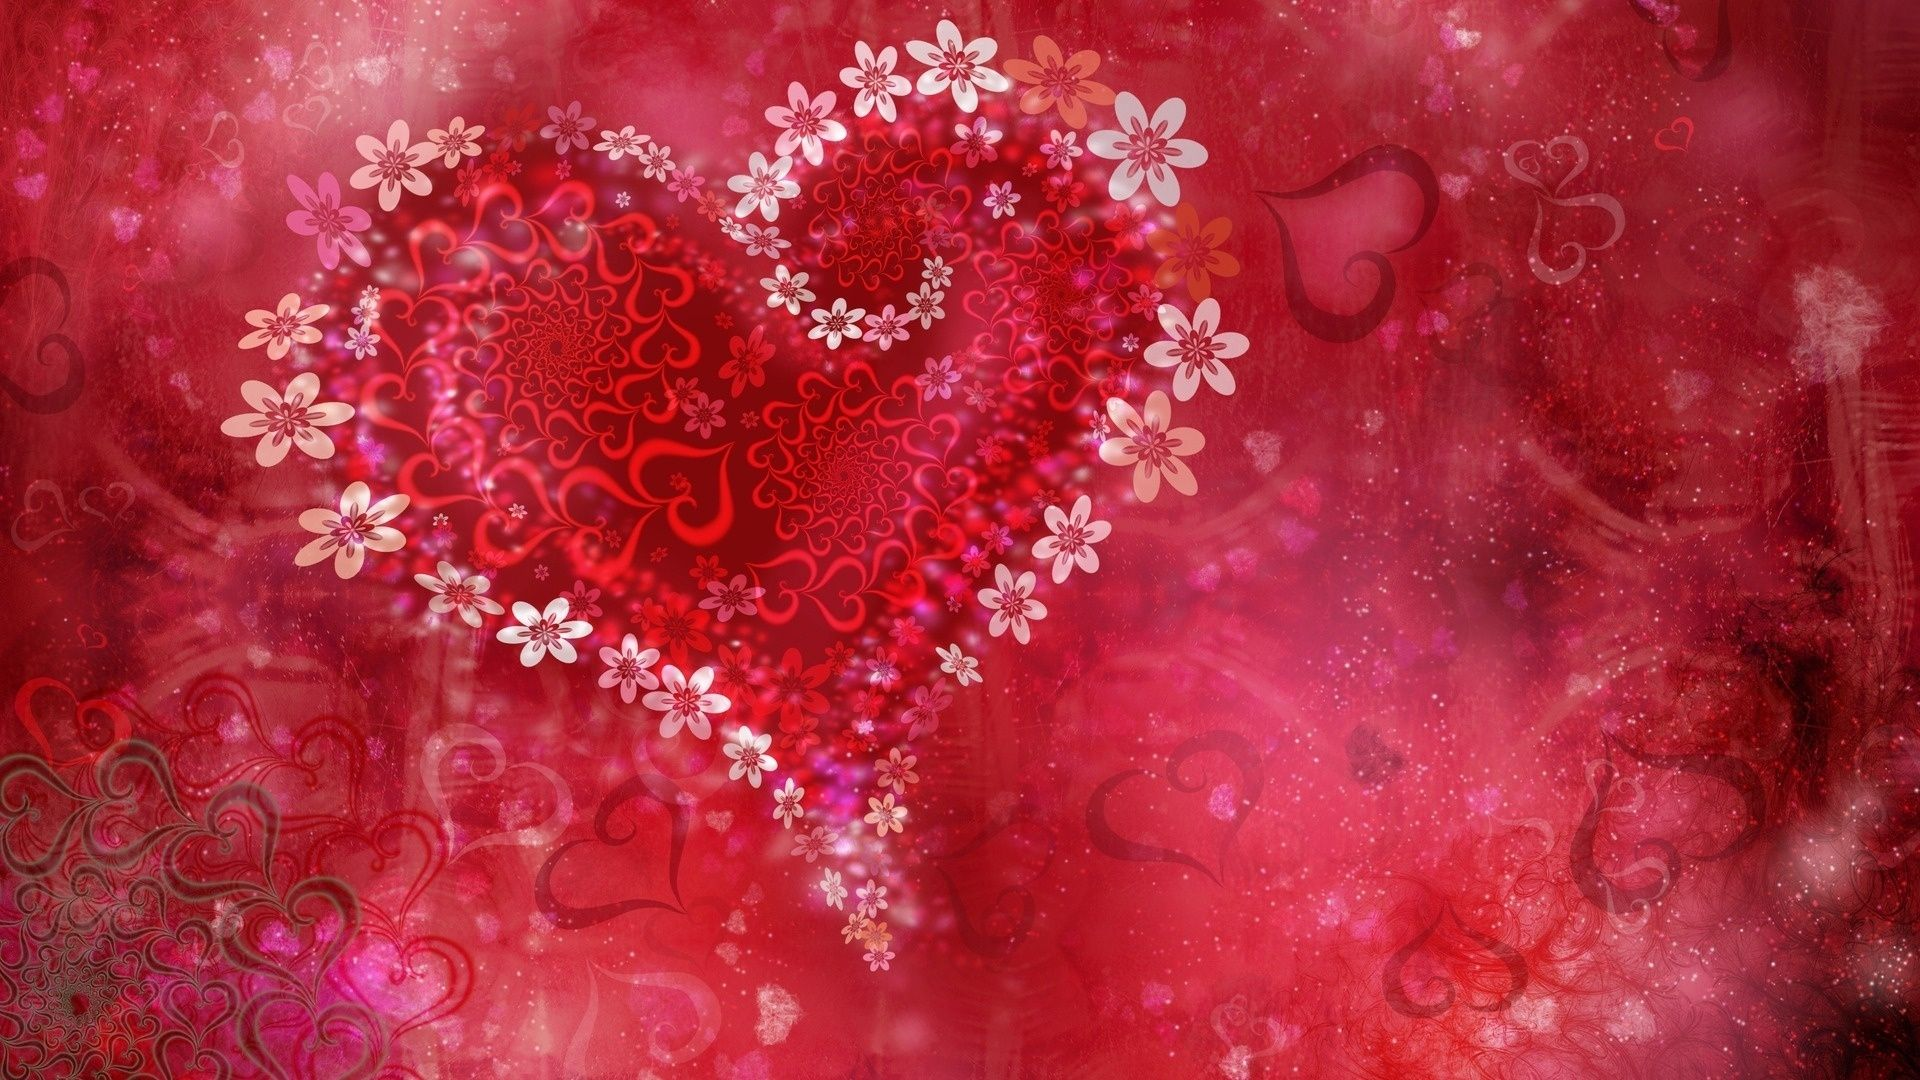 10 New Heart Wallpapers Free Download Full Hd 1080p For Pc Background Heart Wallpaper Flower Heart Valentines Wallpaper